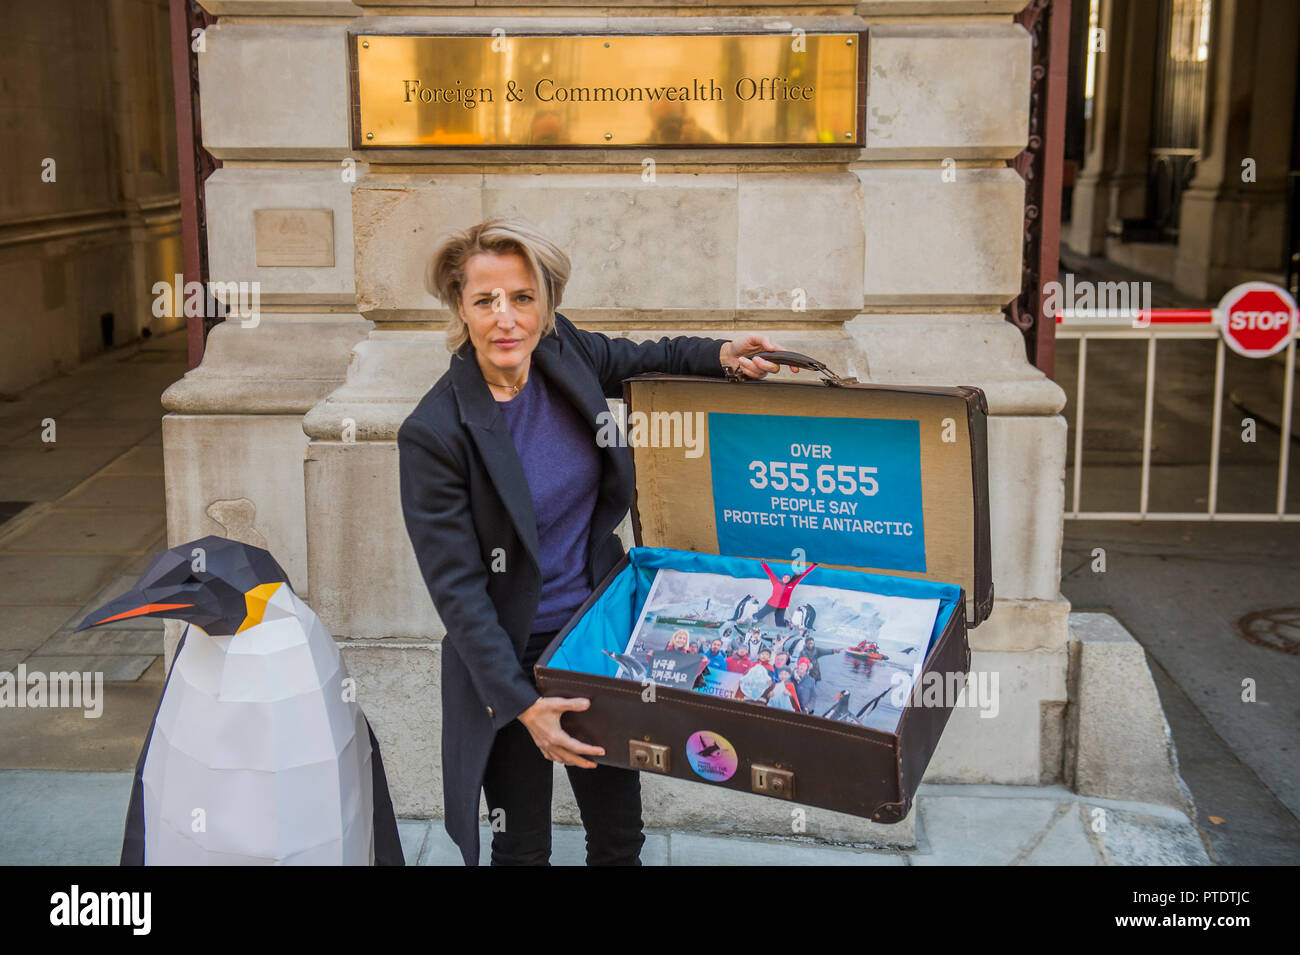 London, UK. 9th October, 2018. Gillian Anderson (pictured) arrives with the 350k signature petition in a well-travelled suitcase - as a Greenpeace Antarctic Ambassador she visits the Foreign & Commonwealth Office to deliver a petition calling for the creation of the largest protected area on Earth – a 1.8 million square kilometre Antarctic Ocean Sanctuary. Credit: Guy Bell/Alamy Live News Stock Photo